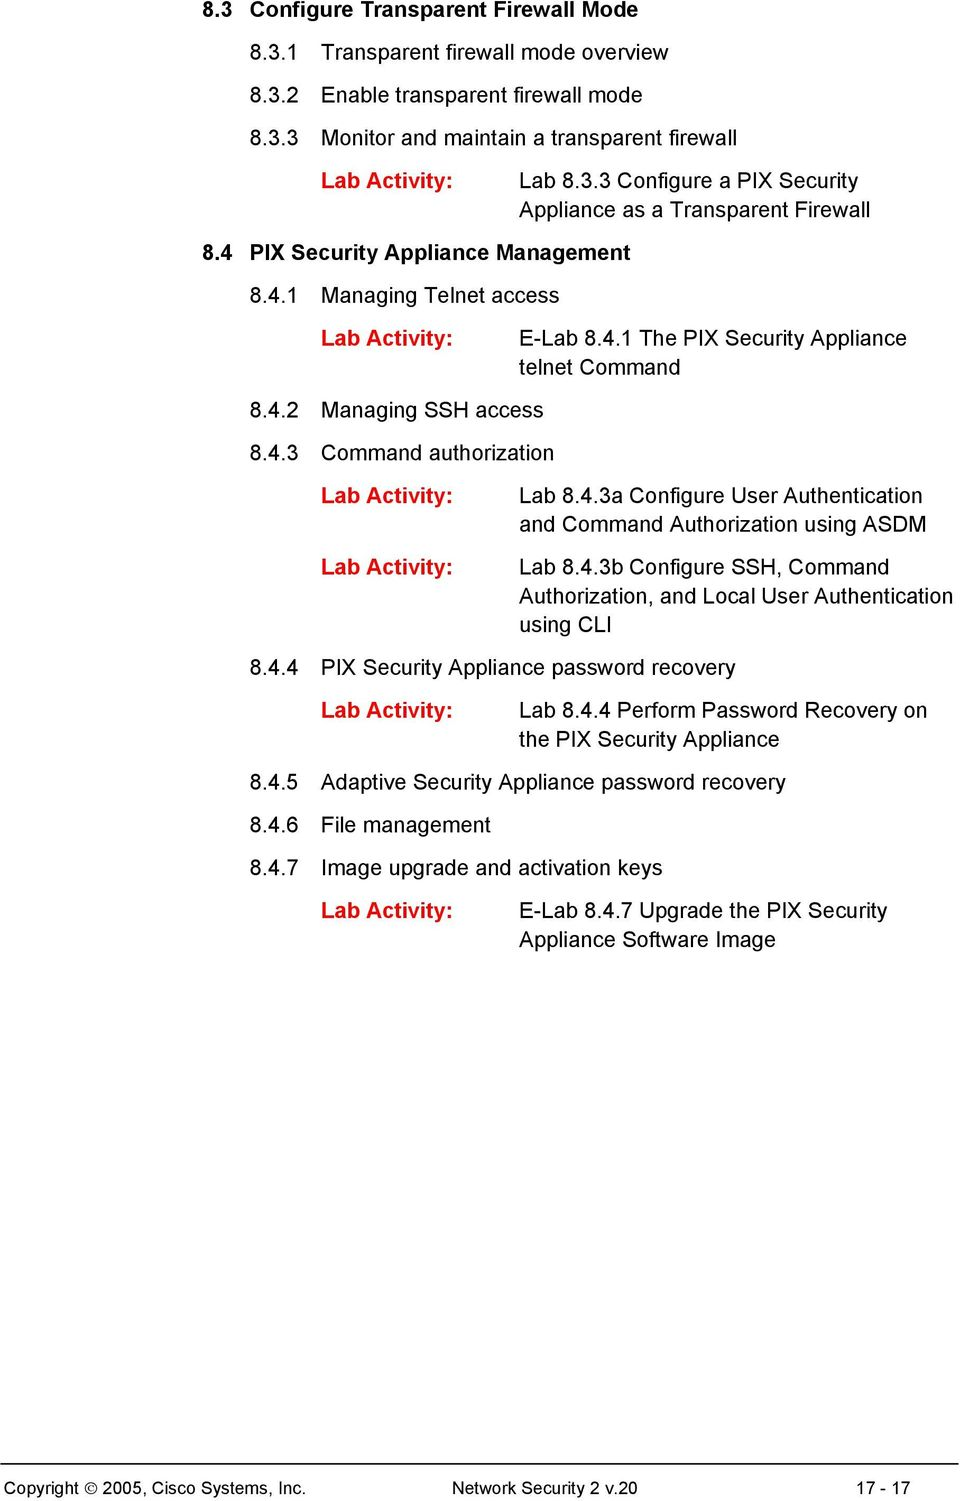 4.3b Configure SSH, Command Authorization, and Local User Authentication using CLI 8.4.4 PIX Security Appliance password recovery Lab 8.4.4 Perform Password Recovery on the PIX Security Appliance 8.4.5 Adaptive Security Appliance password recovery 8.